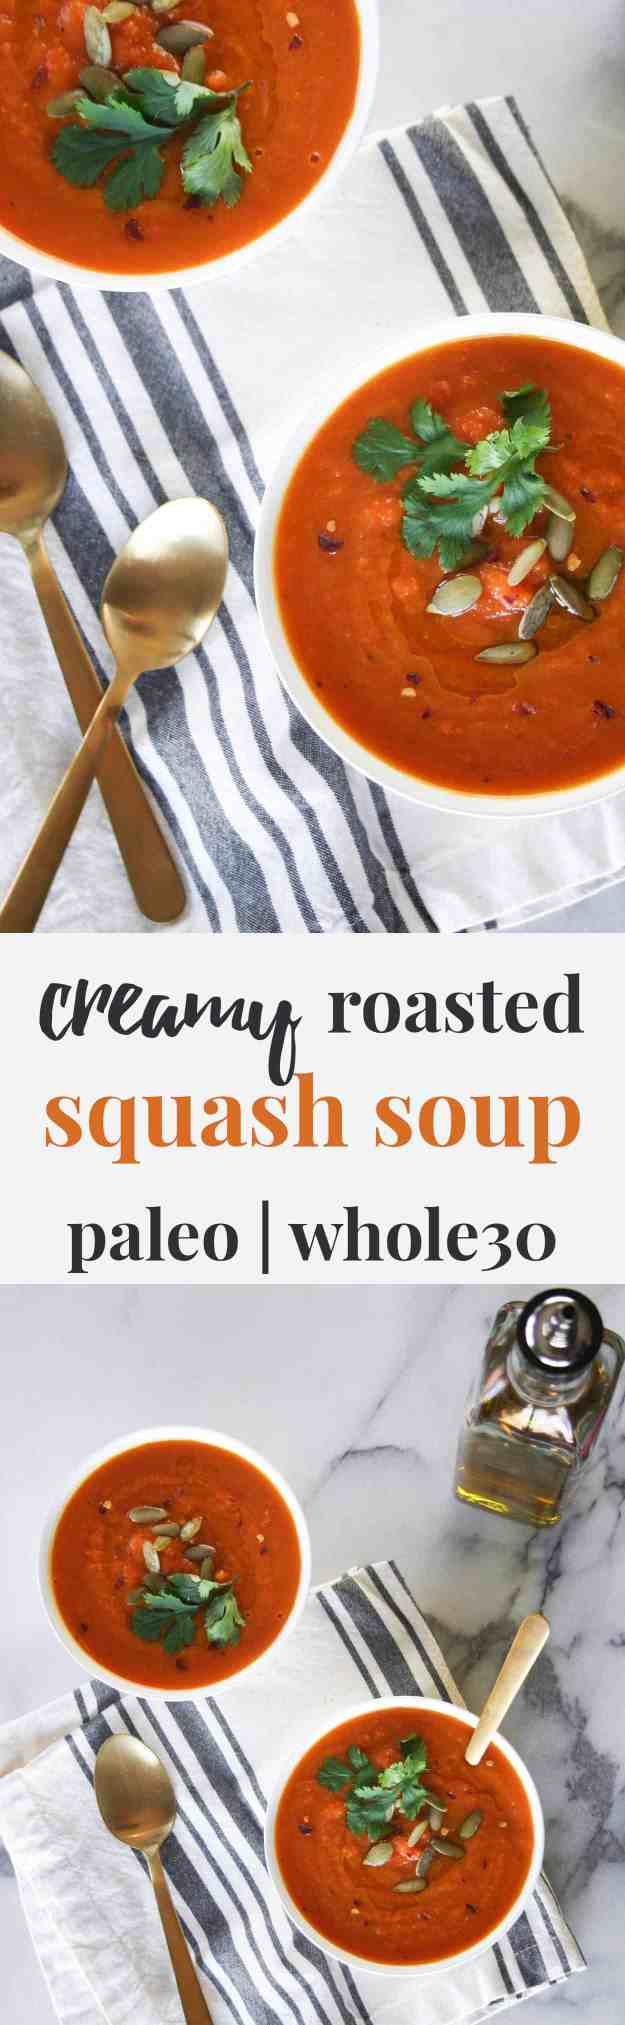 Creamy roasted squash soup combines roasted butternut squash and carrots to make a creamy (but creamless!) paleo and Whole30 compliant soup! | hungrybynature.com